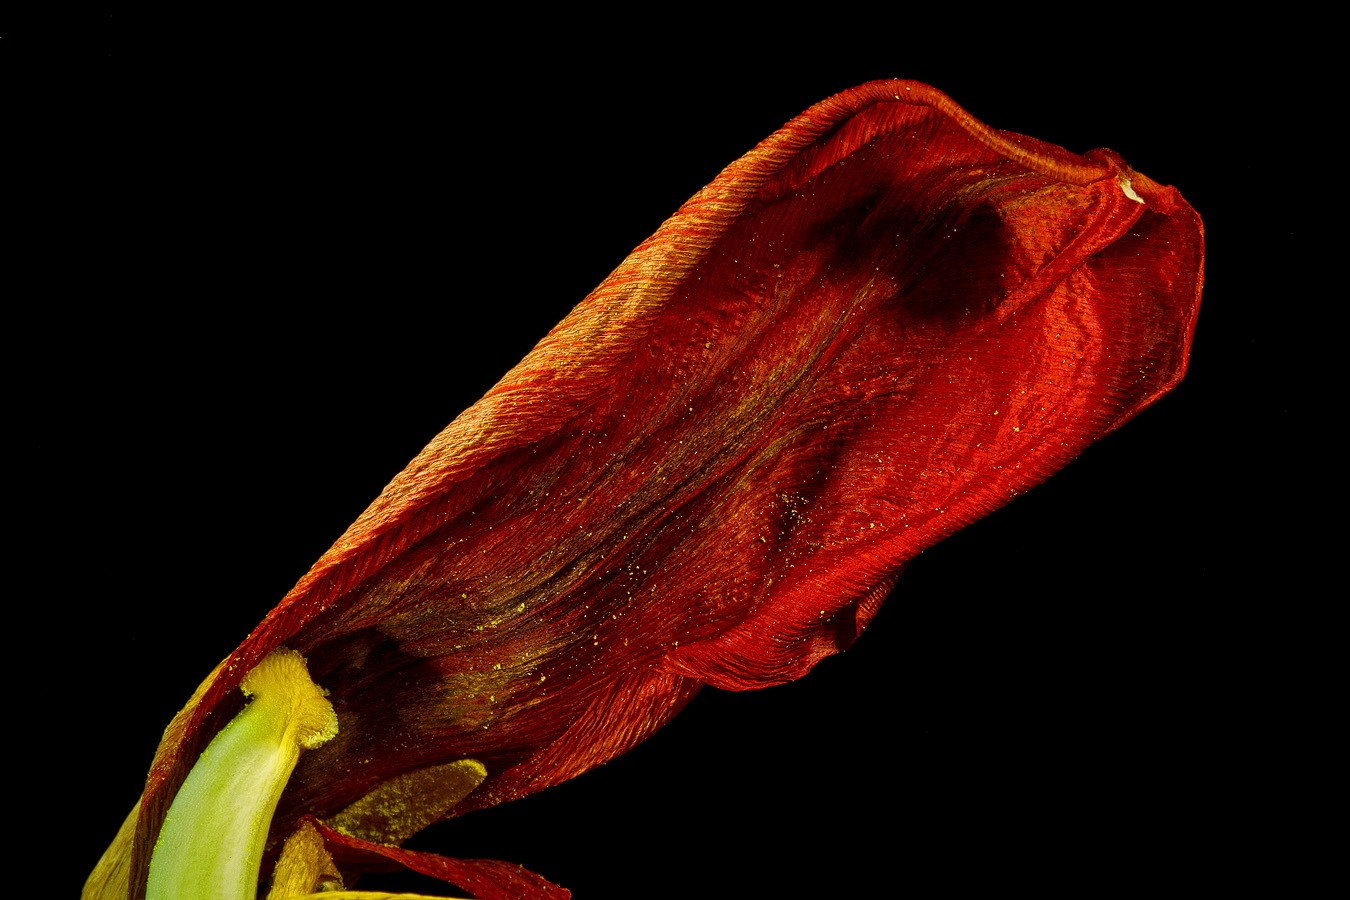 end stage tulip petal img aw author sava gregory and verena